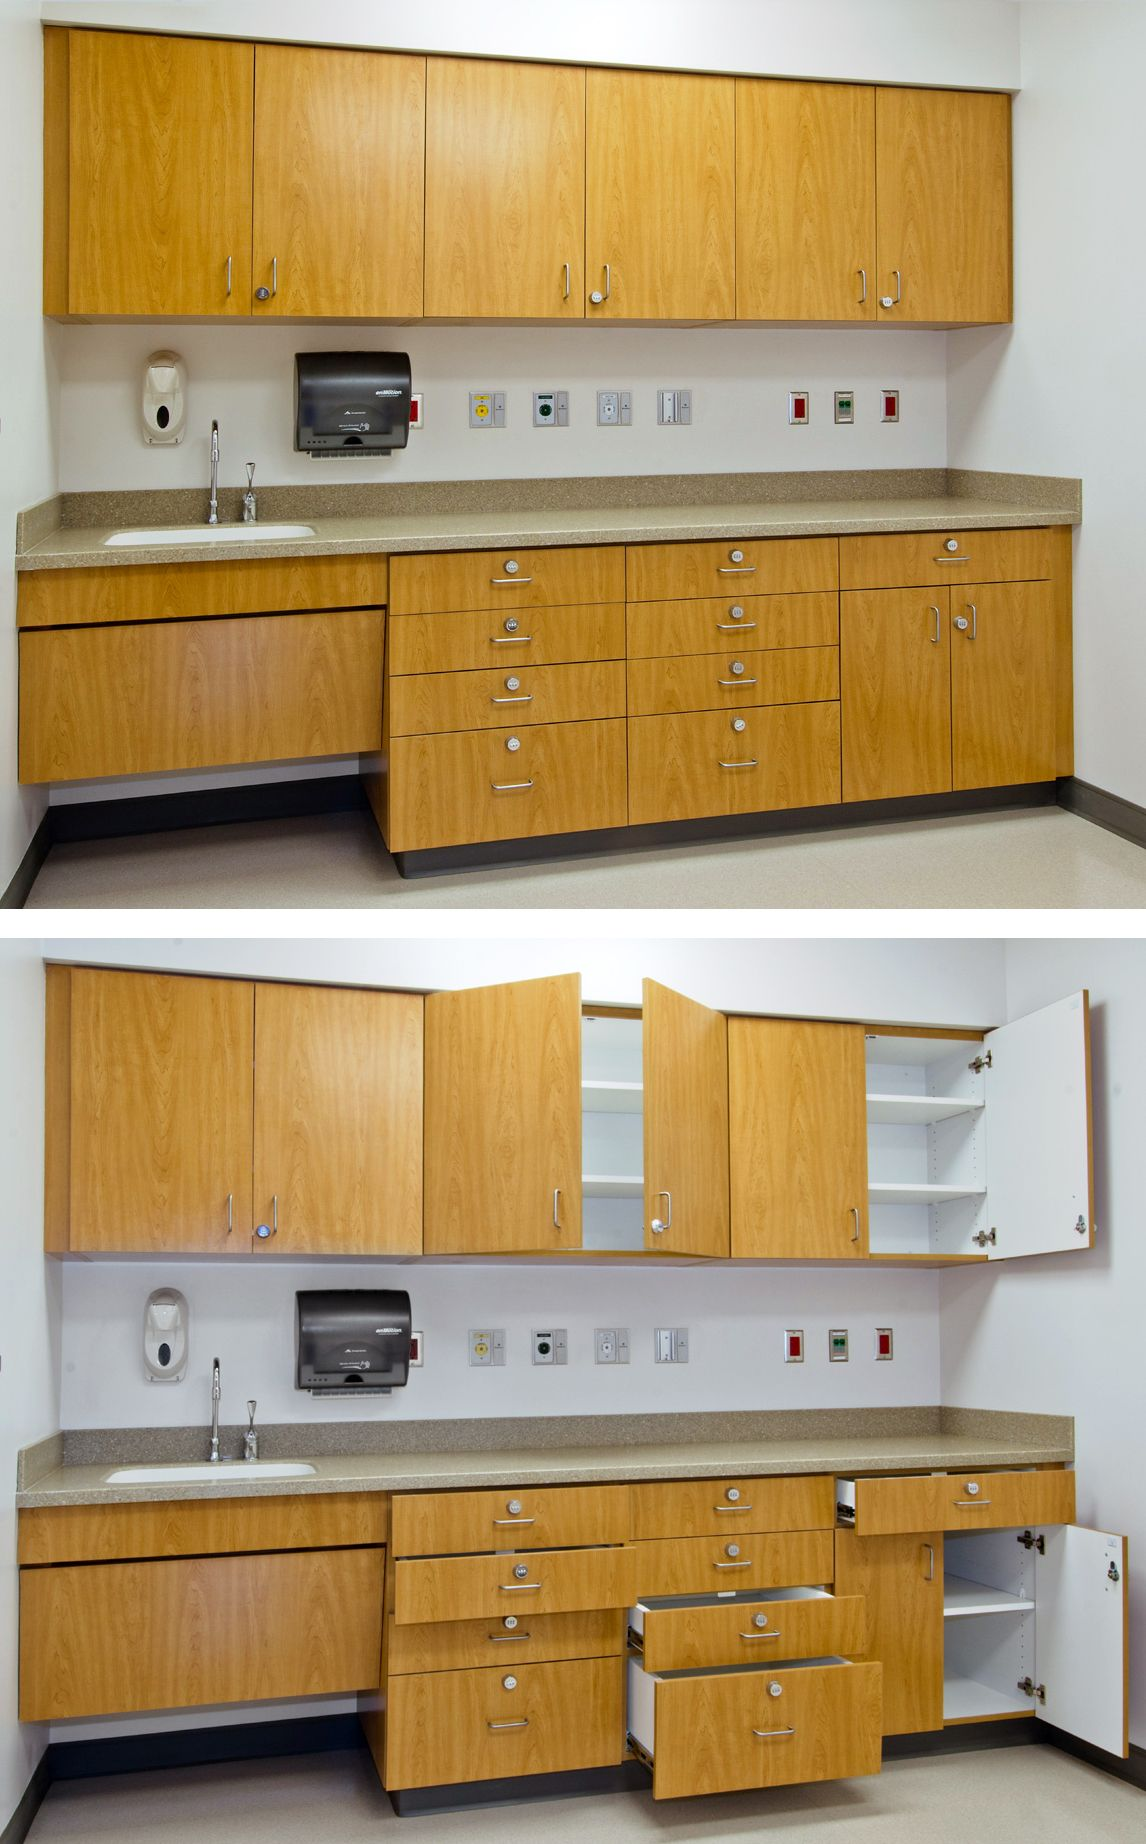 Cabinets With Locks Mercy Health Partners Cabinet Door Designs Kitchen Cabinet Doors Kitchen Cabinets